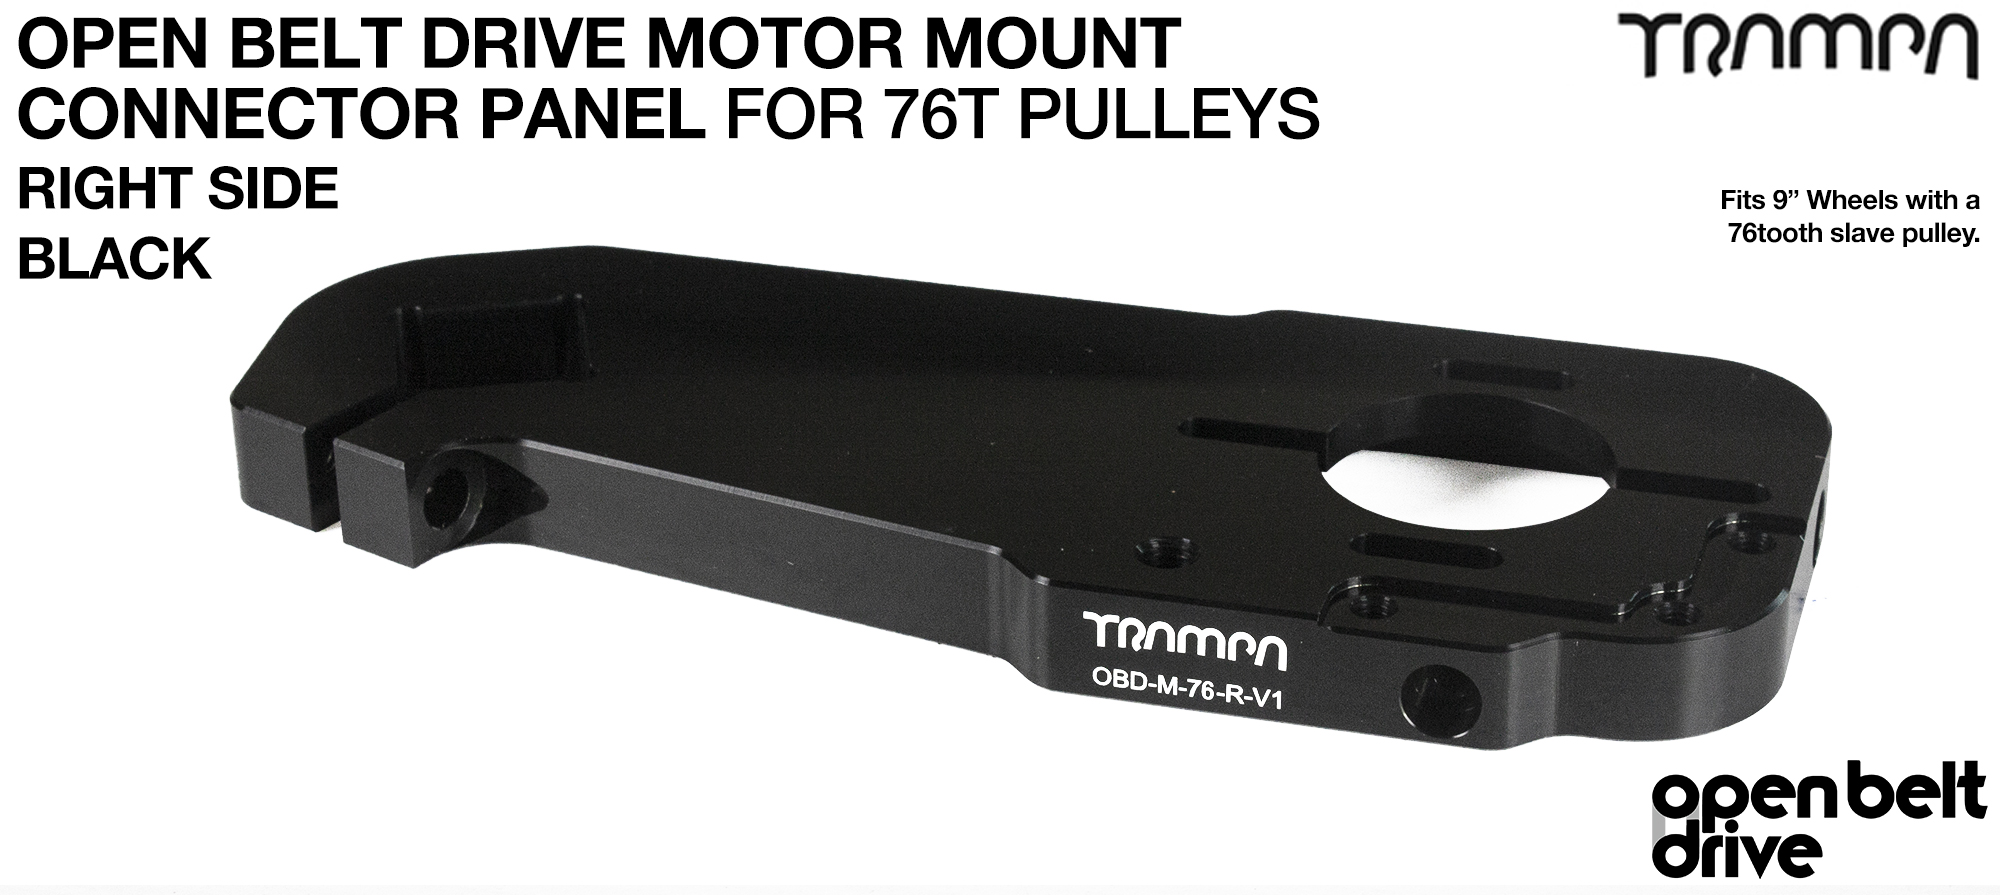 BLACK 76T GOOFY OBD Motor Mount Connector Panel